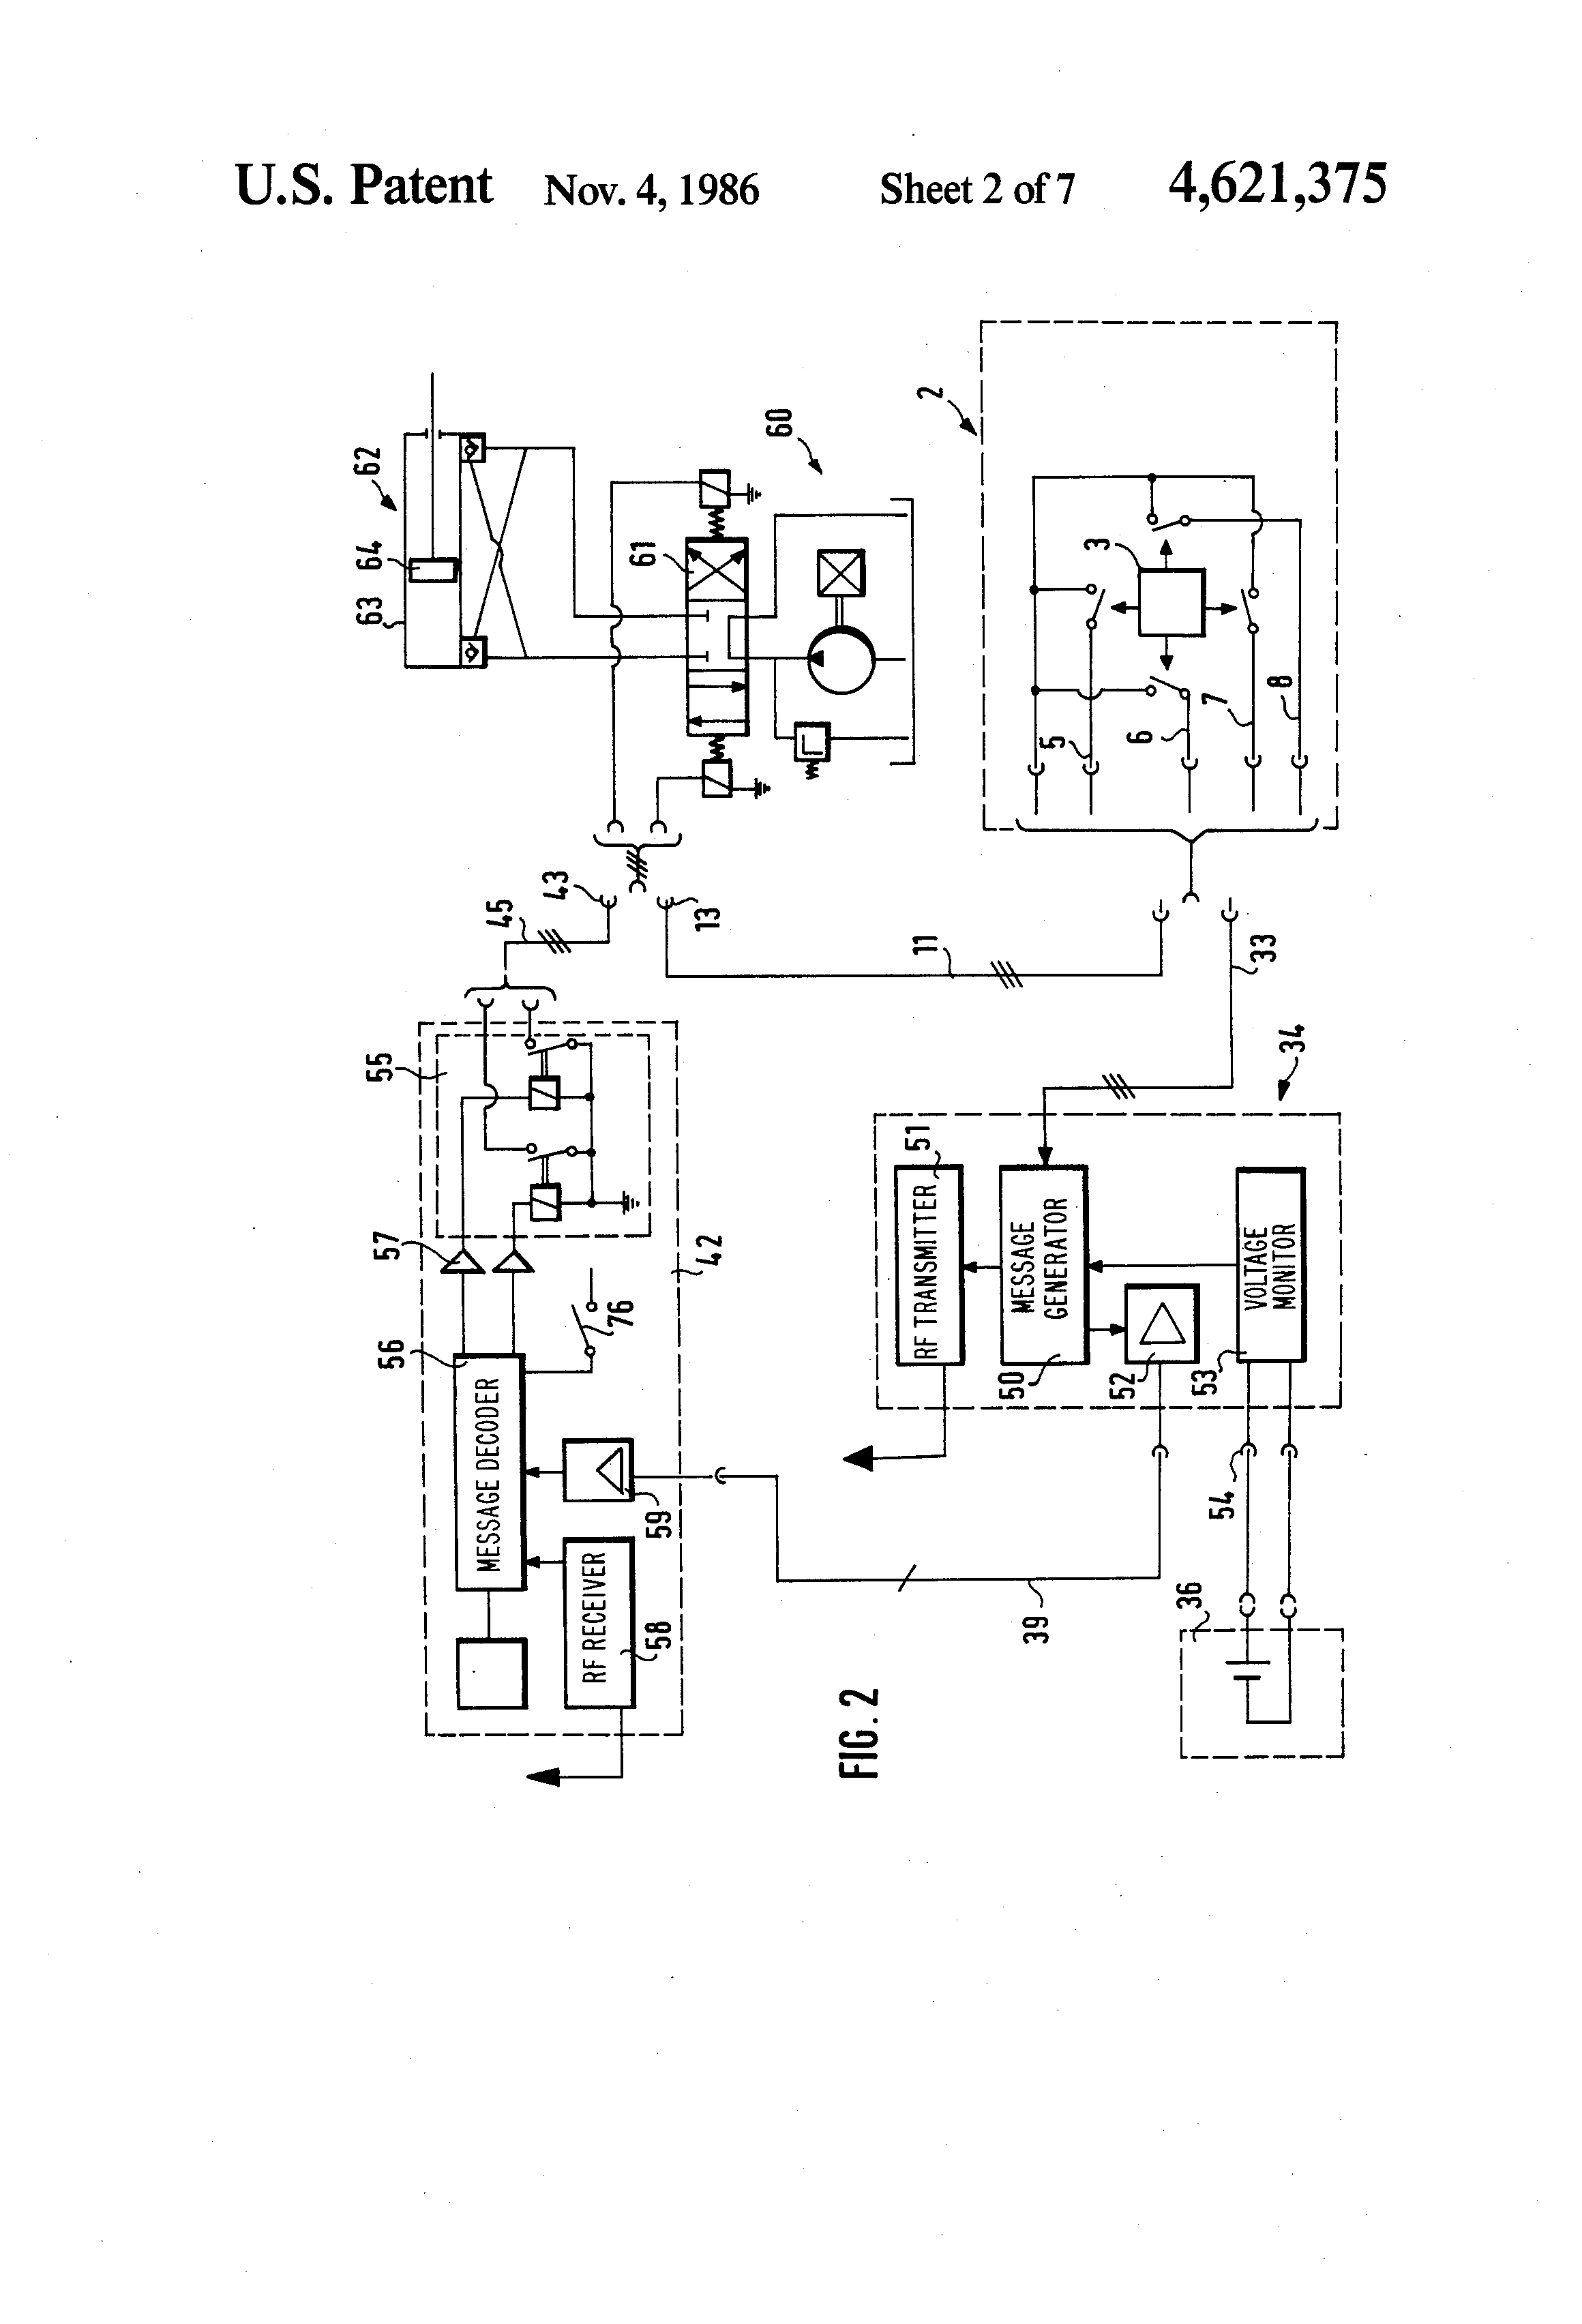 wiring diagrams  u2022 bayanpartner co